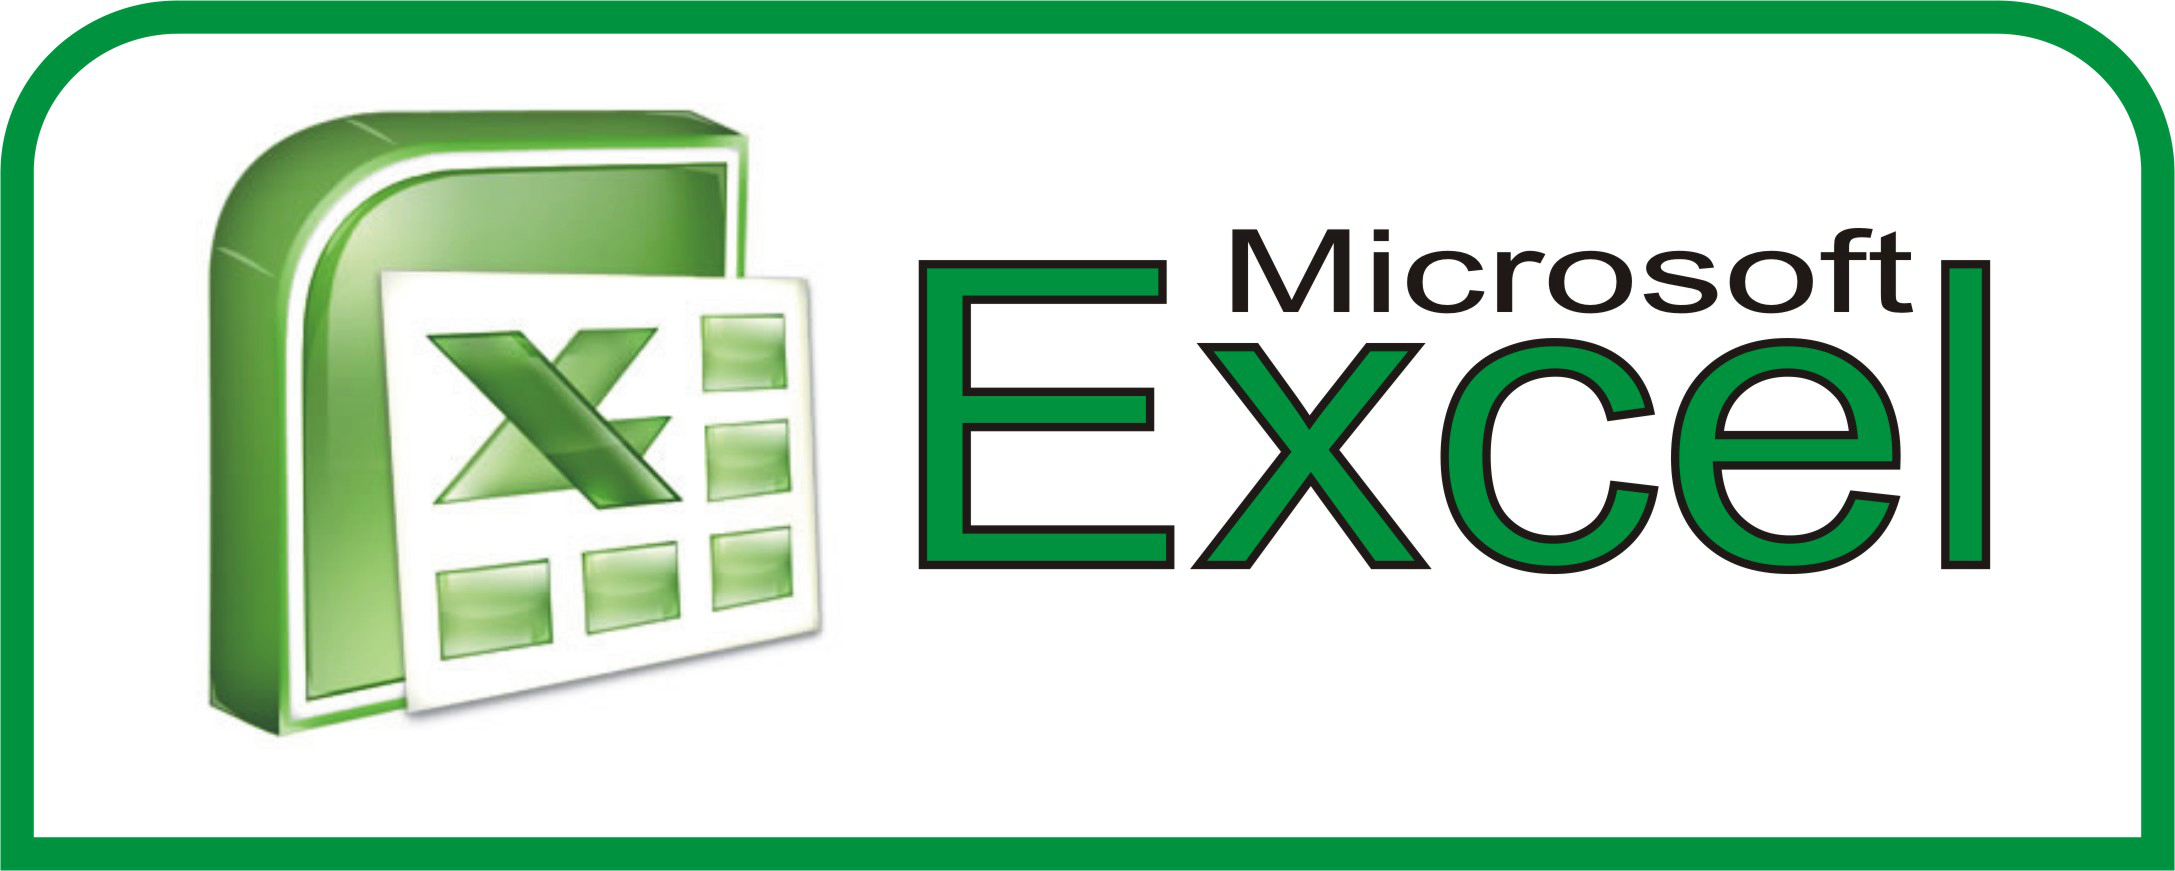 Ediblewildsus  Sweet  Excel Shortcuts You Probably Didnt Know About  Techdissected With Likable Excel Chart Templates Free Besides Restaurant Balance Sheet Excel Furthermore Online Pdf To Word And Excel Converter Free Download With Astounding Ms Excel  Exercises Doc Also Excel To Matlab In Addition How To Calculate Date Difference In Excel And Free Excel Help Chat As Well As Slicers In Excel  Additionally Recover Overwritten Excel File  From Techdissectedcom With Ediblewildsus  Likable  Excel Shortcuts You Probably Didnt Know About  Techdissected With Astounding Excel Chart Templates Free Besides Restaurant Balance Sheet Excel Furthermore Online Pdf To Word And Excel Converter Free Download And Sweet Ms Excel  Exercises Doc Also Excel To Matlab In Addition How To Calculate Date Difference In Excel From Techdissectedcom